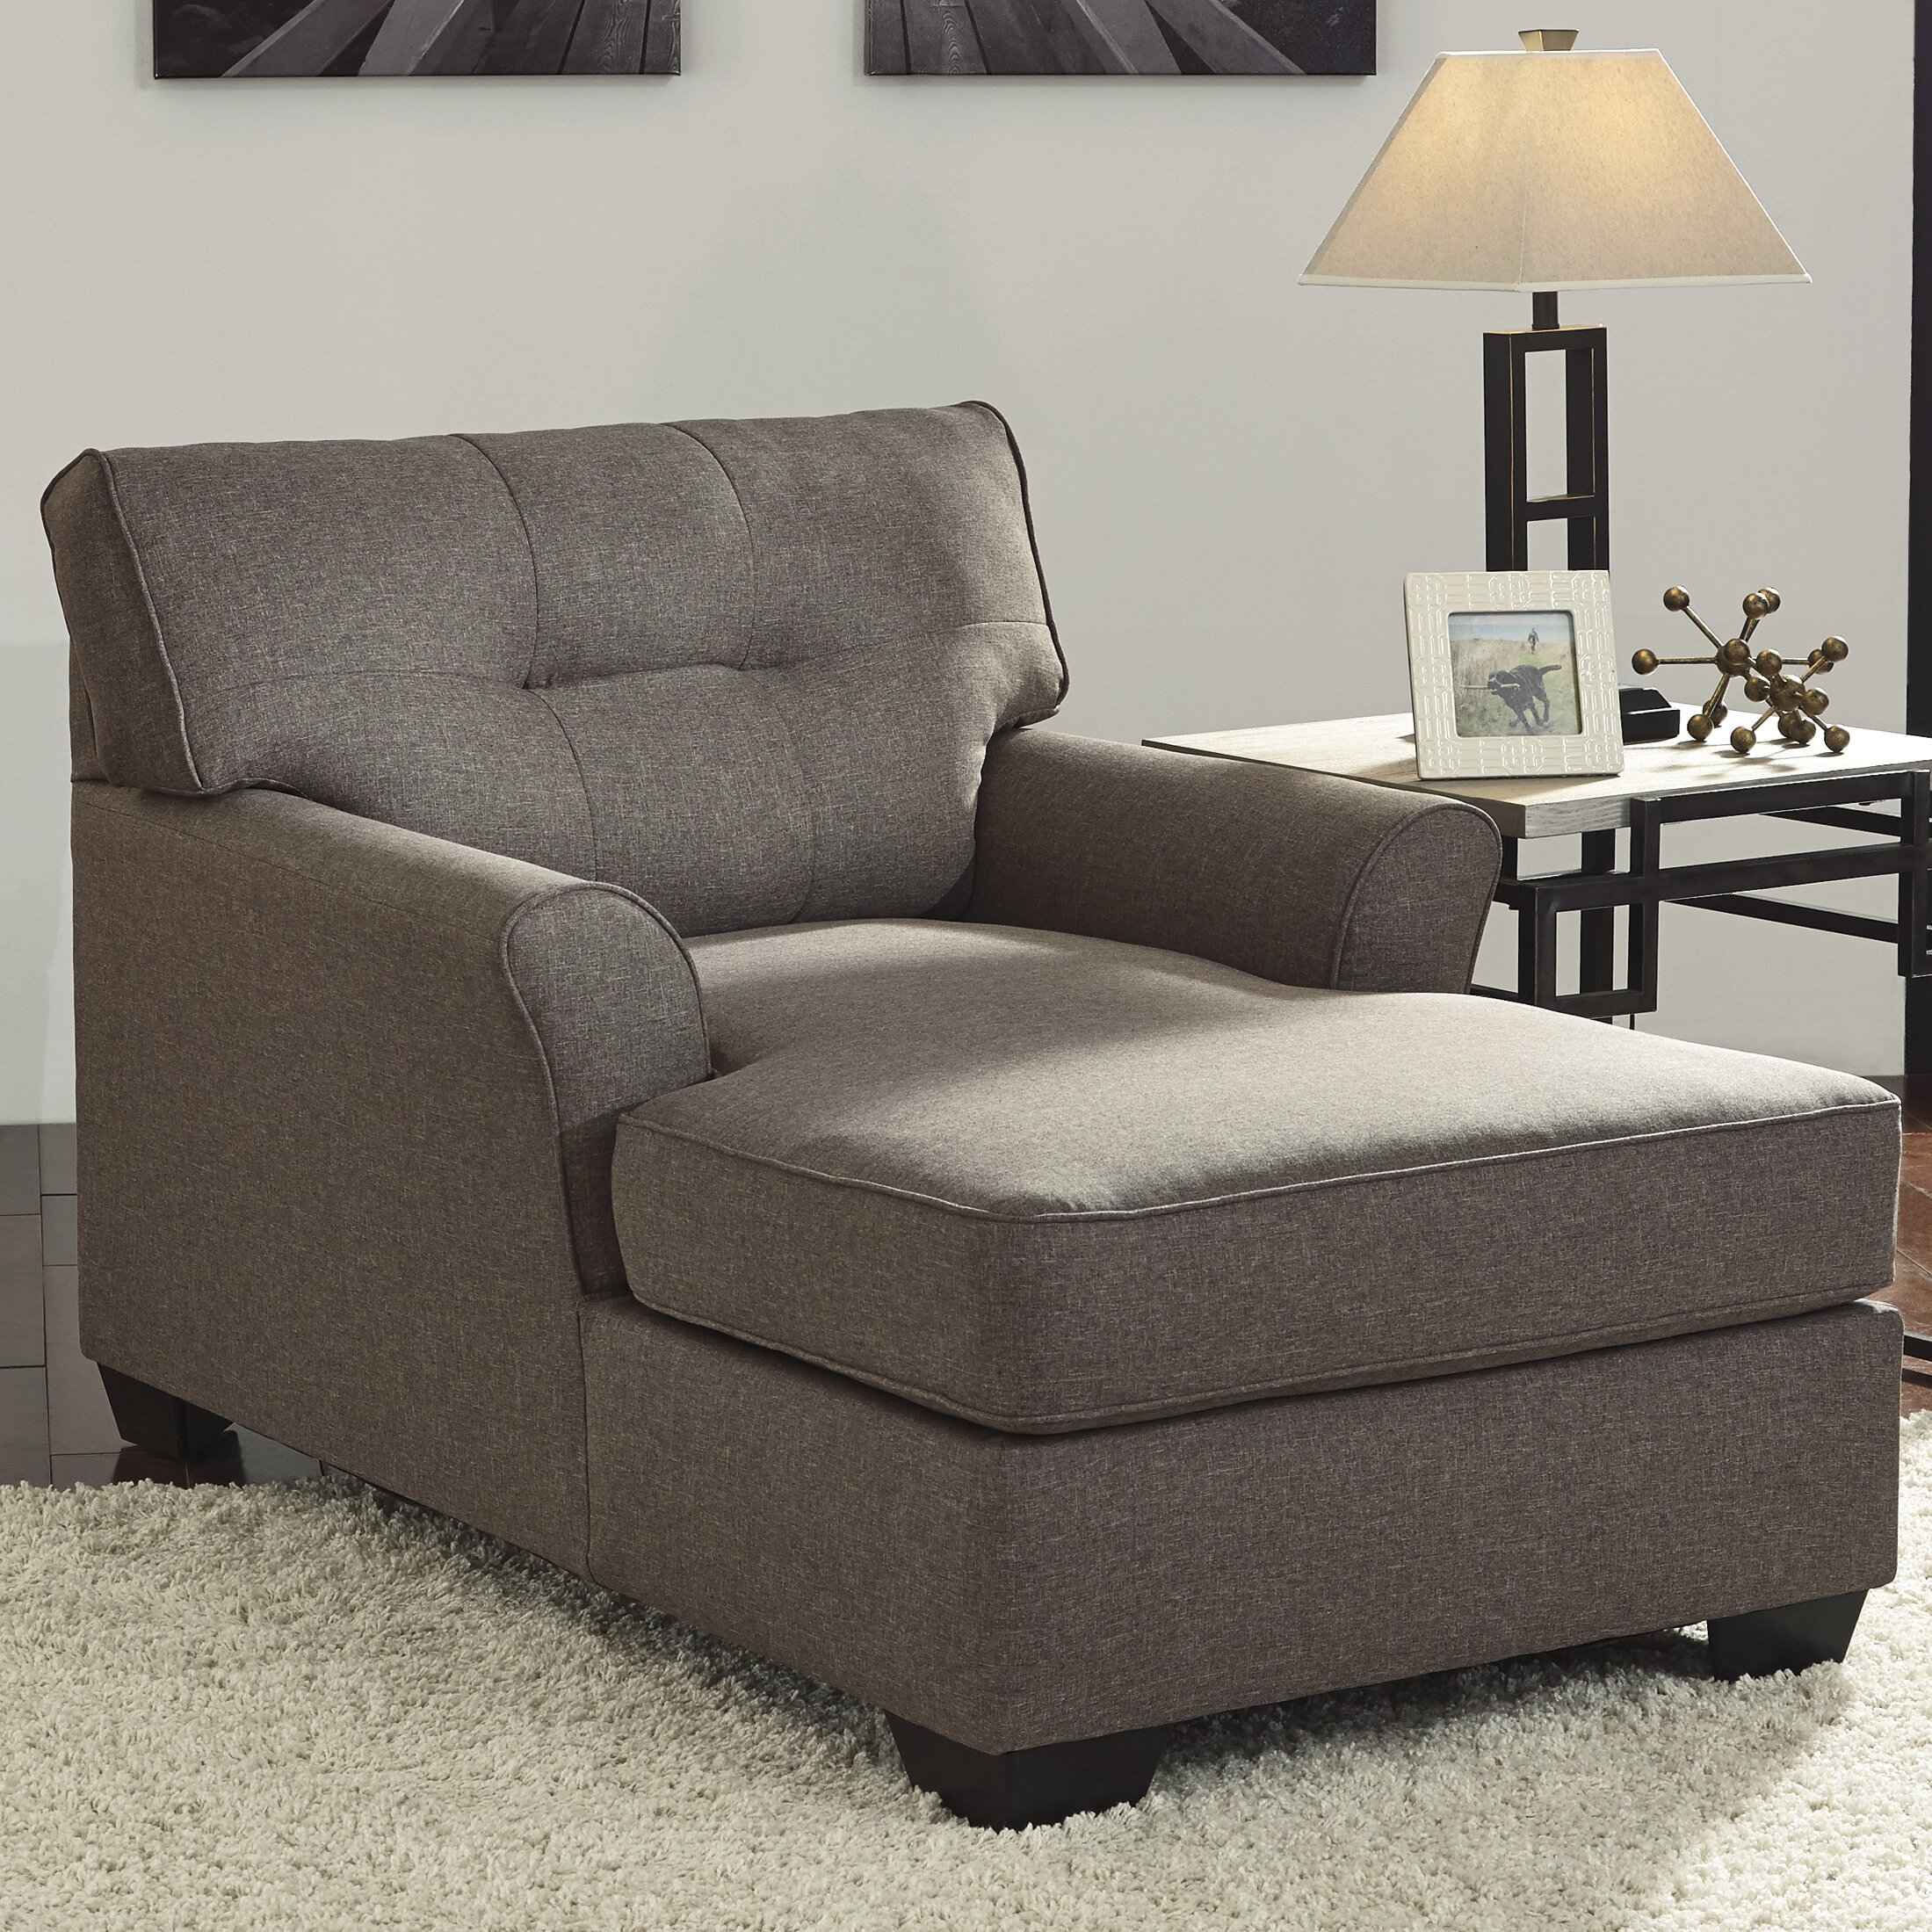 Signature design by ashley tibbee chaise lounge reviews for Living room lounge chair